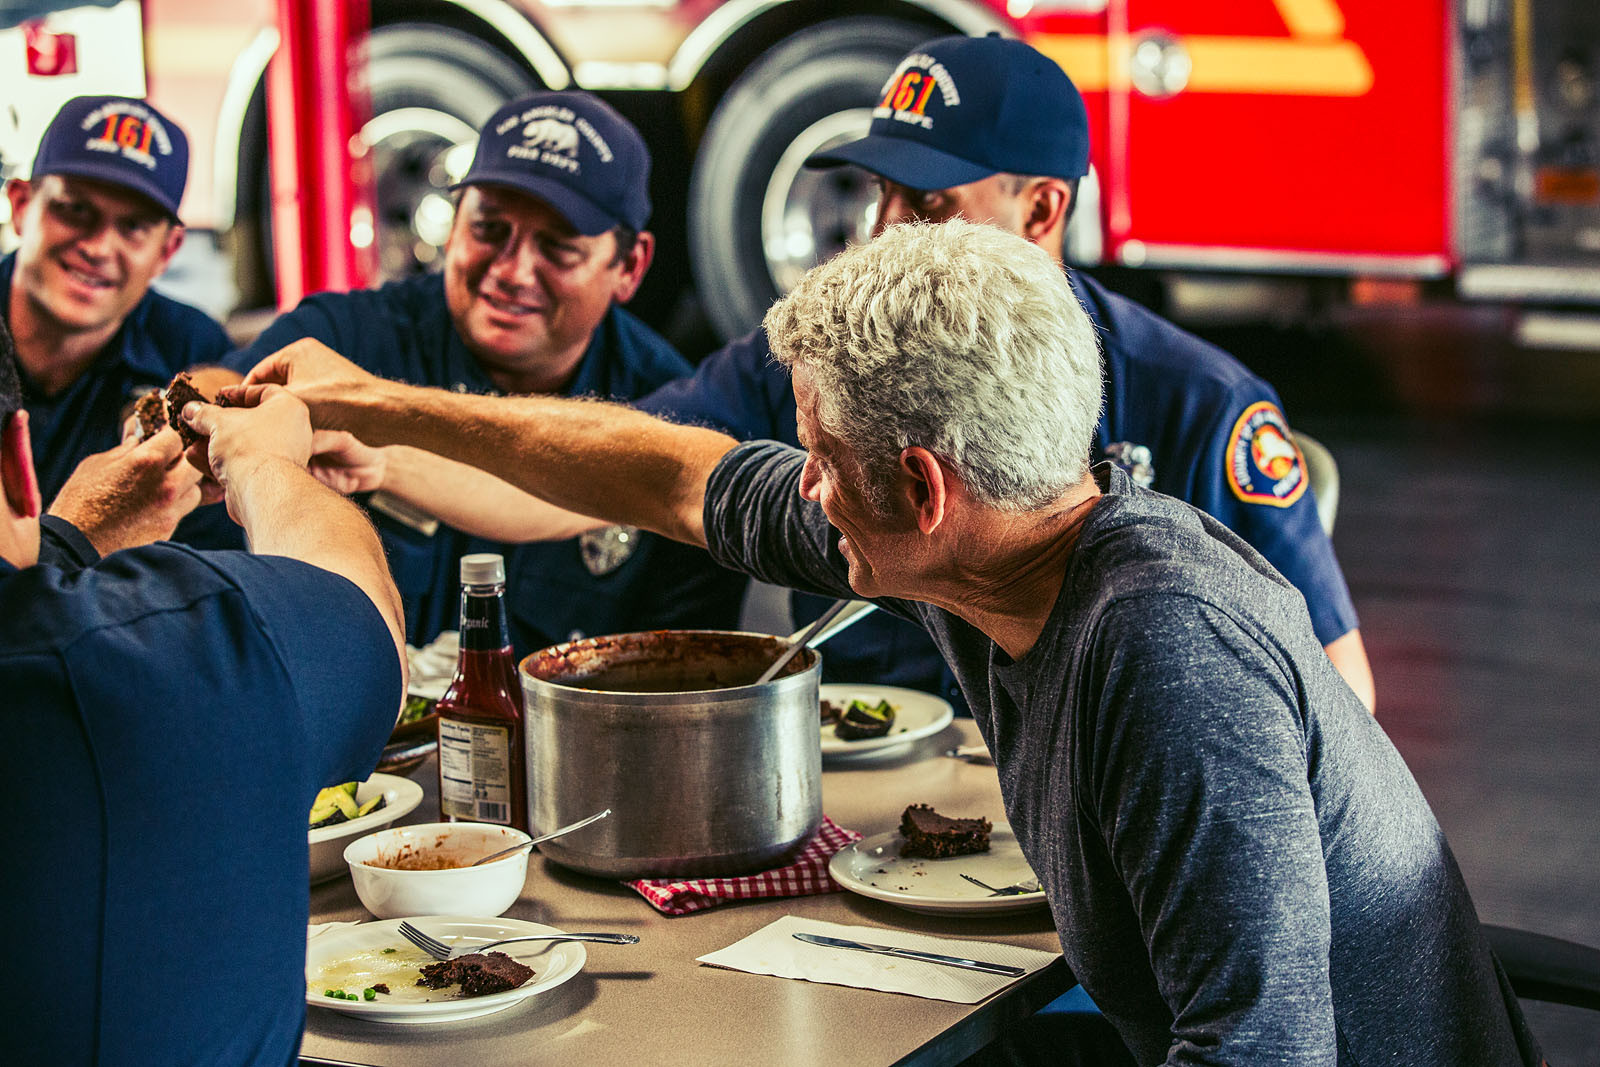 RIP ESSELSTYN AND FIREFIGHTERS_FOOD INTE